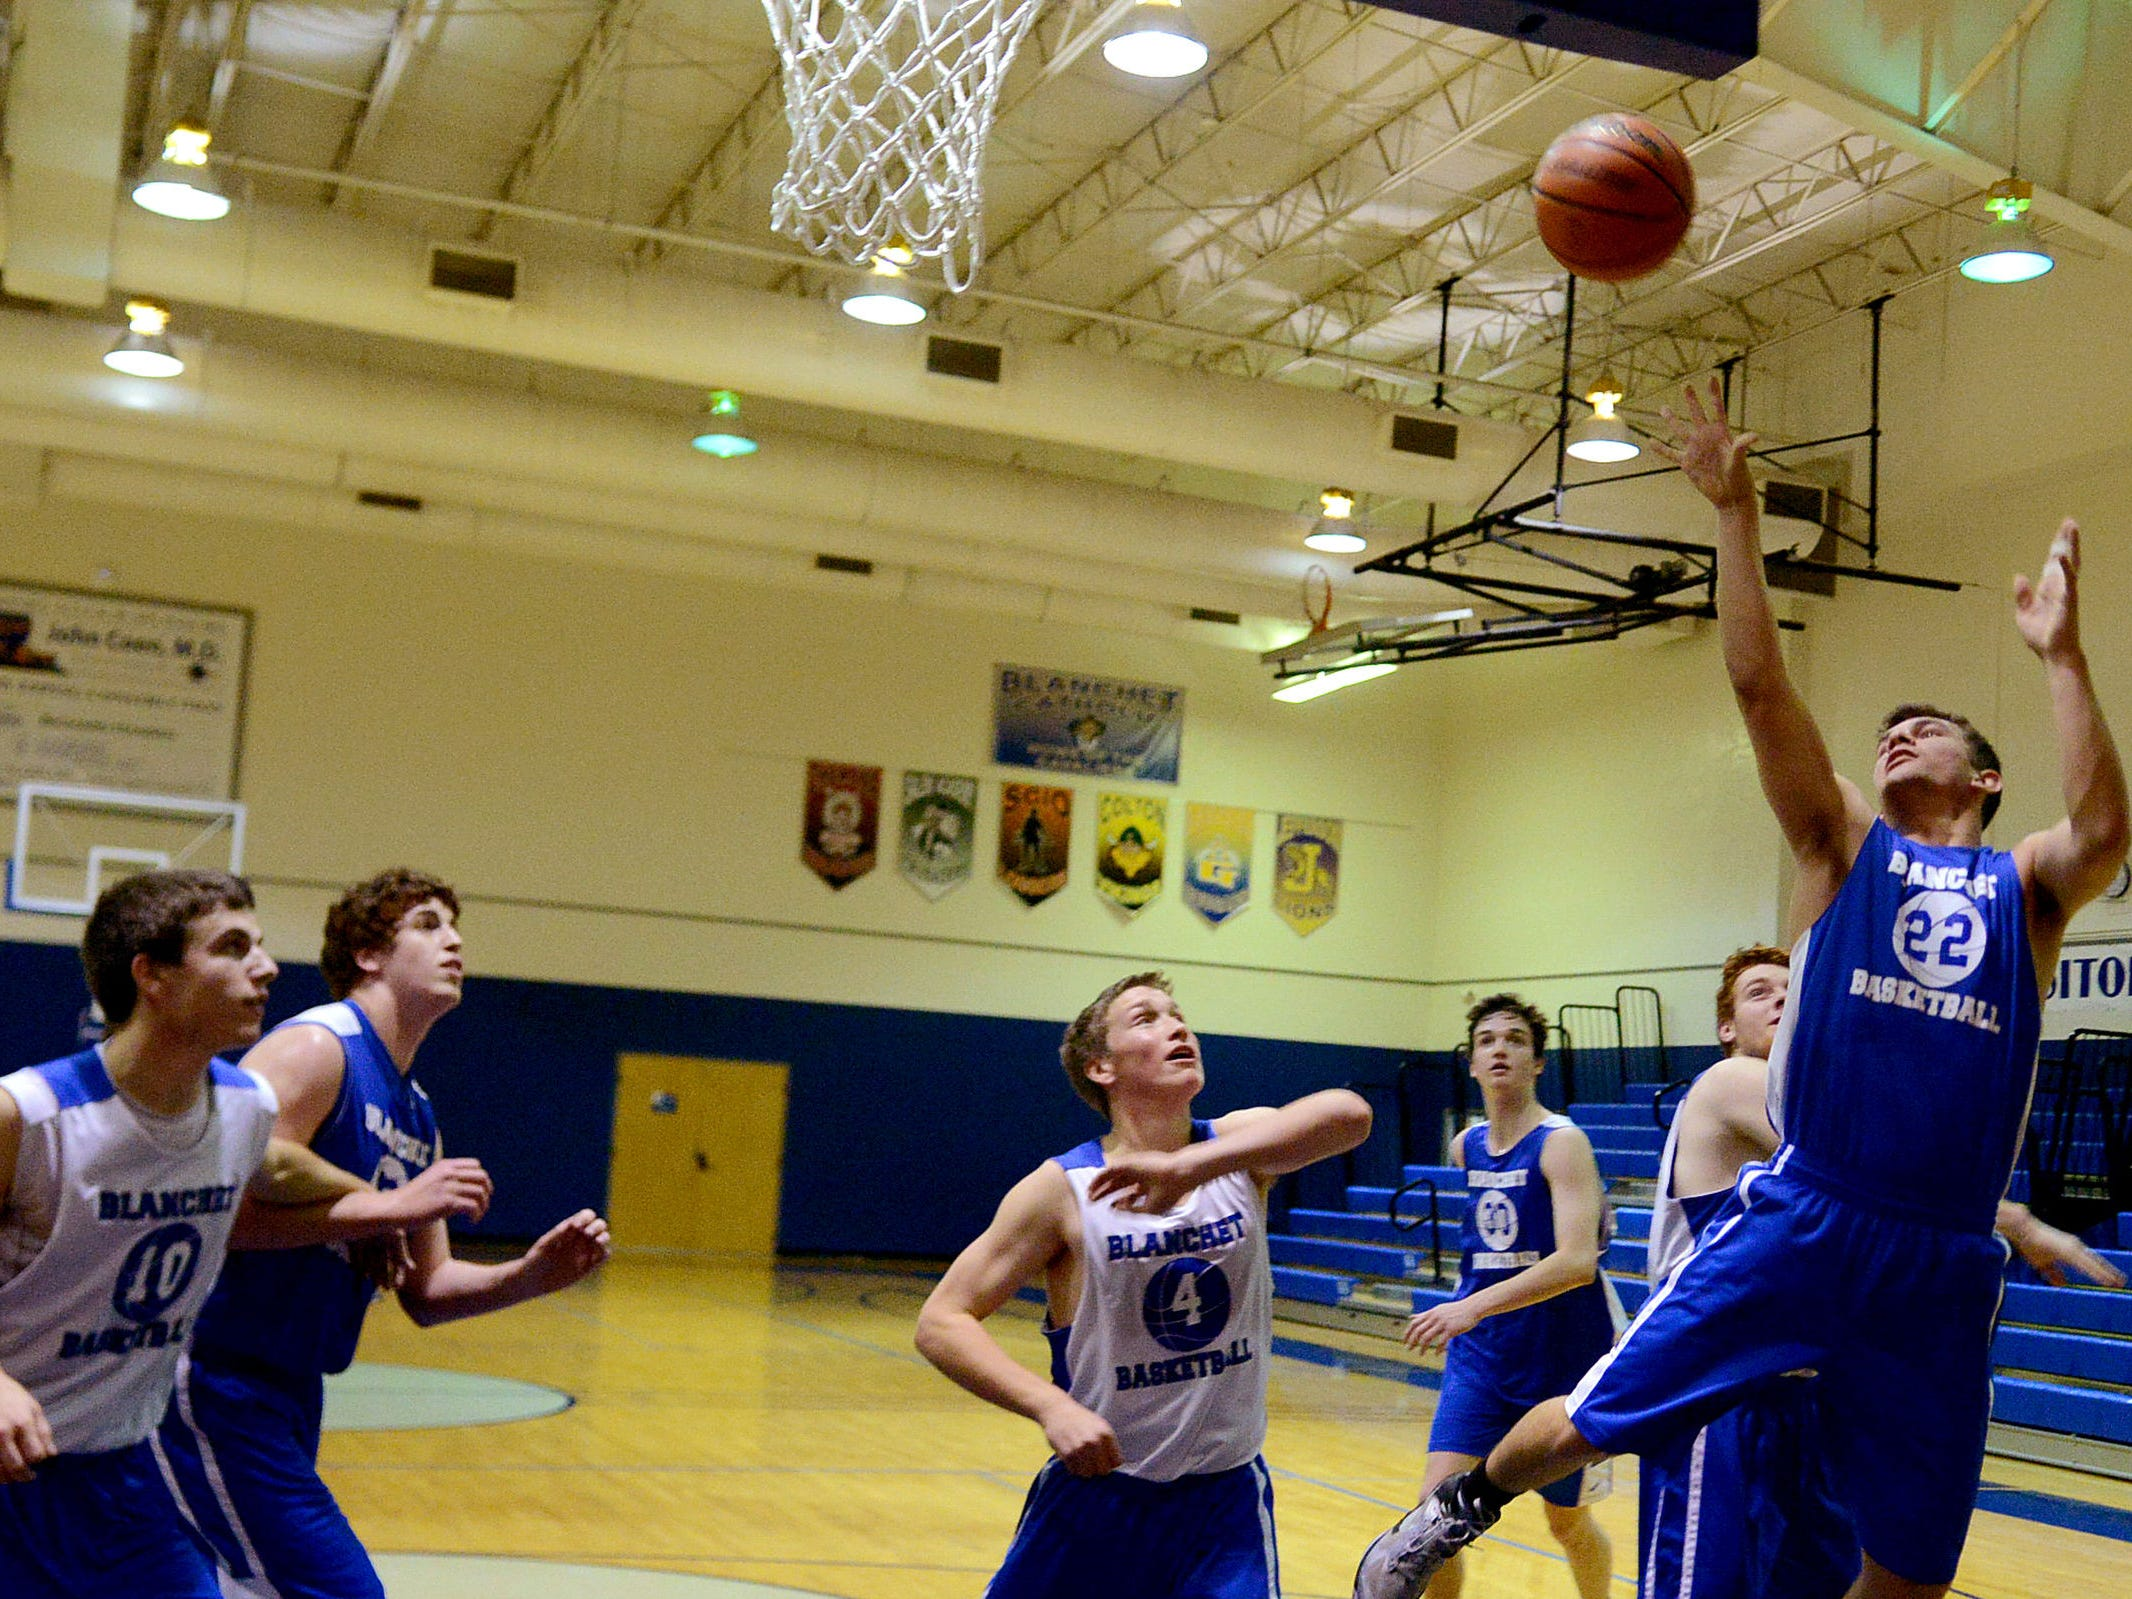 Players practice at Blanchet Catholic School in Salem on Thursday, Dec. 11, 2014. Scott Cantonwine, the new head coach, for the Blanchet Catholic boy's basketball team, is returning to high school coaching after nearly 20 years.